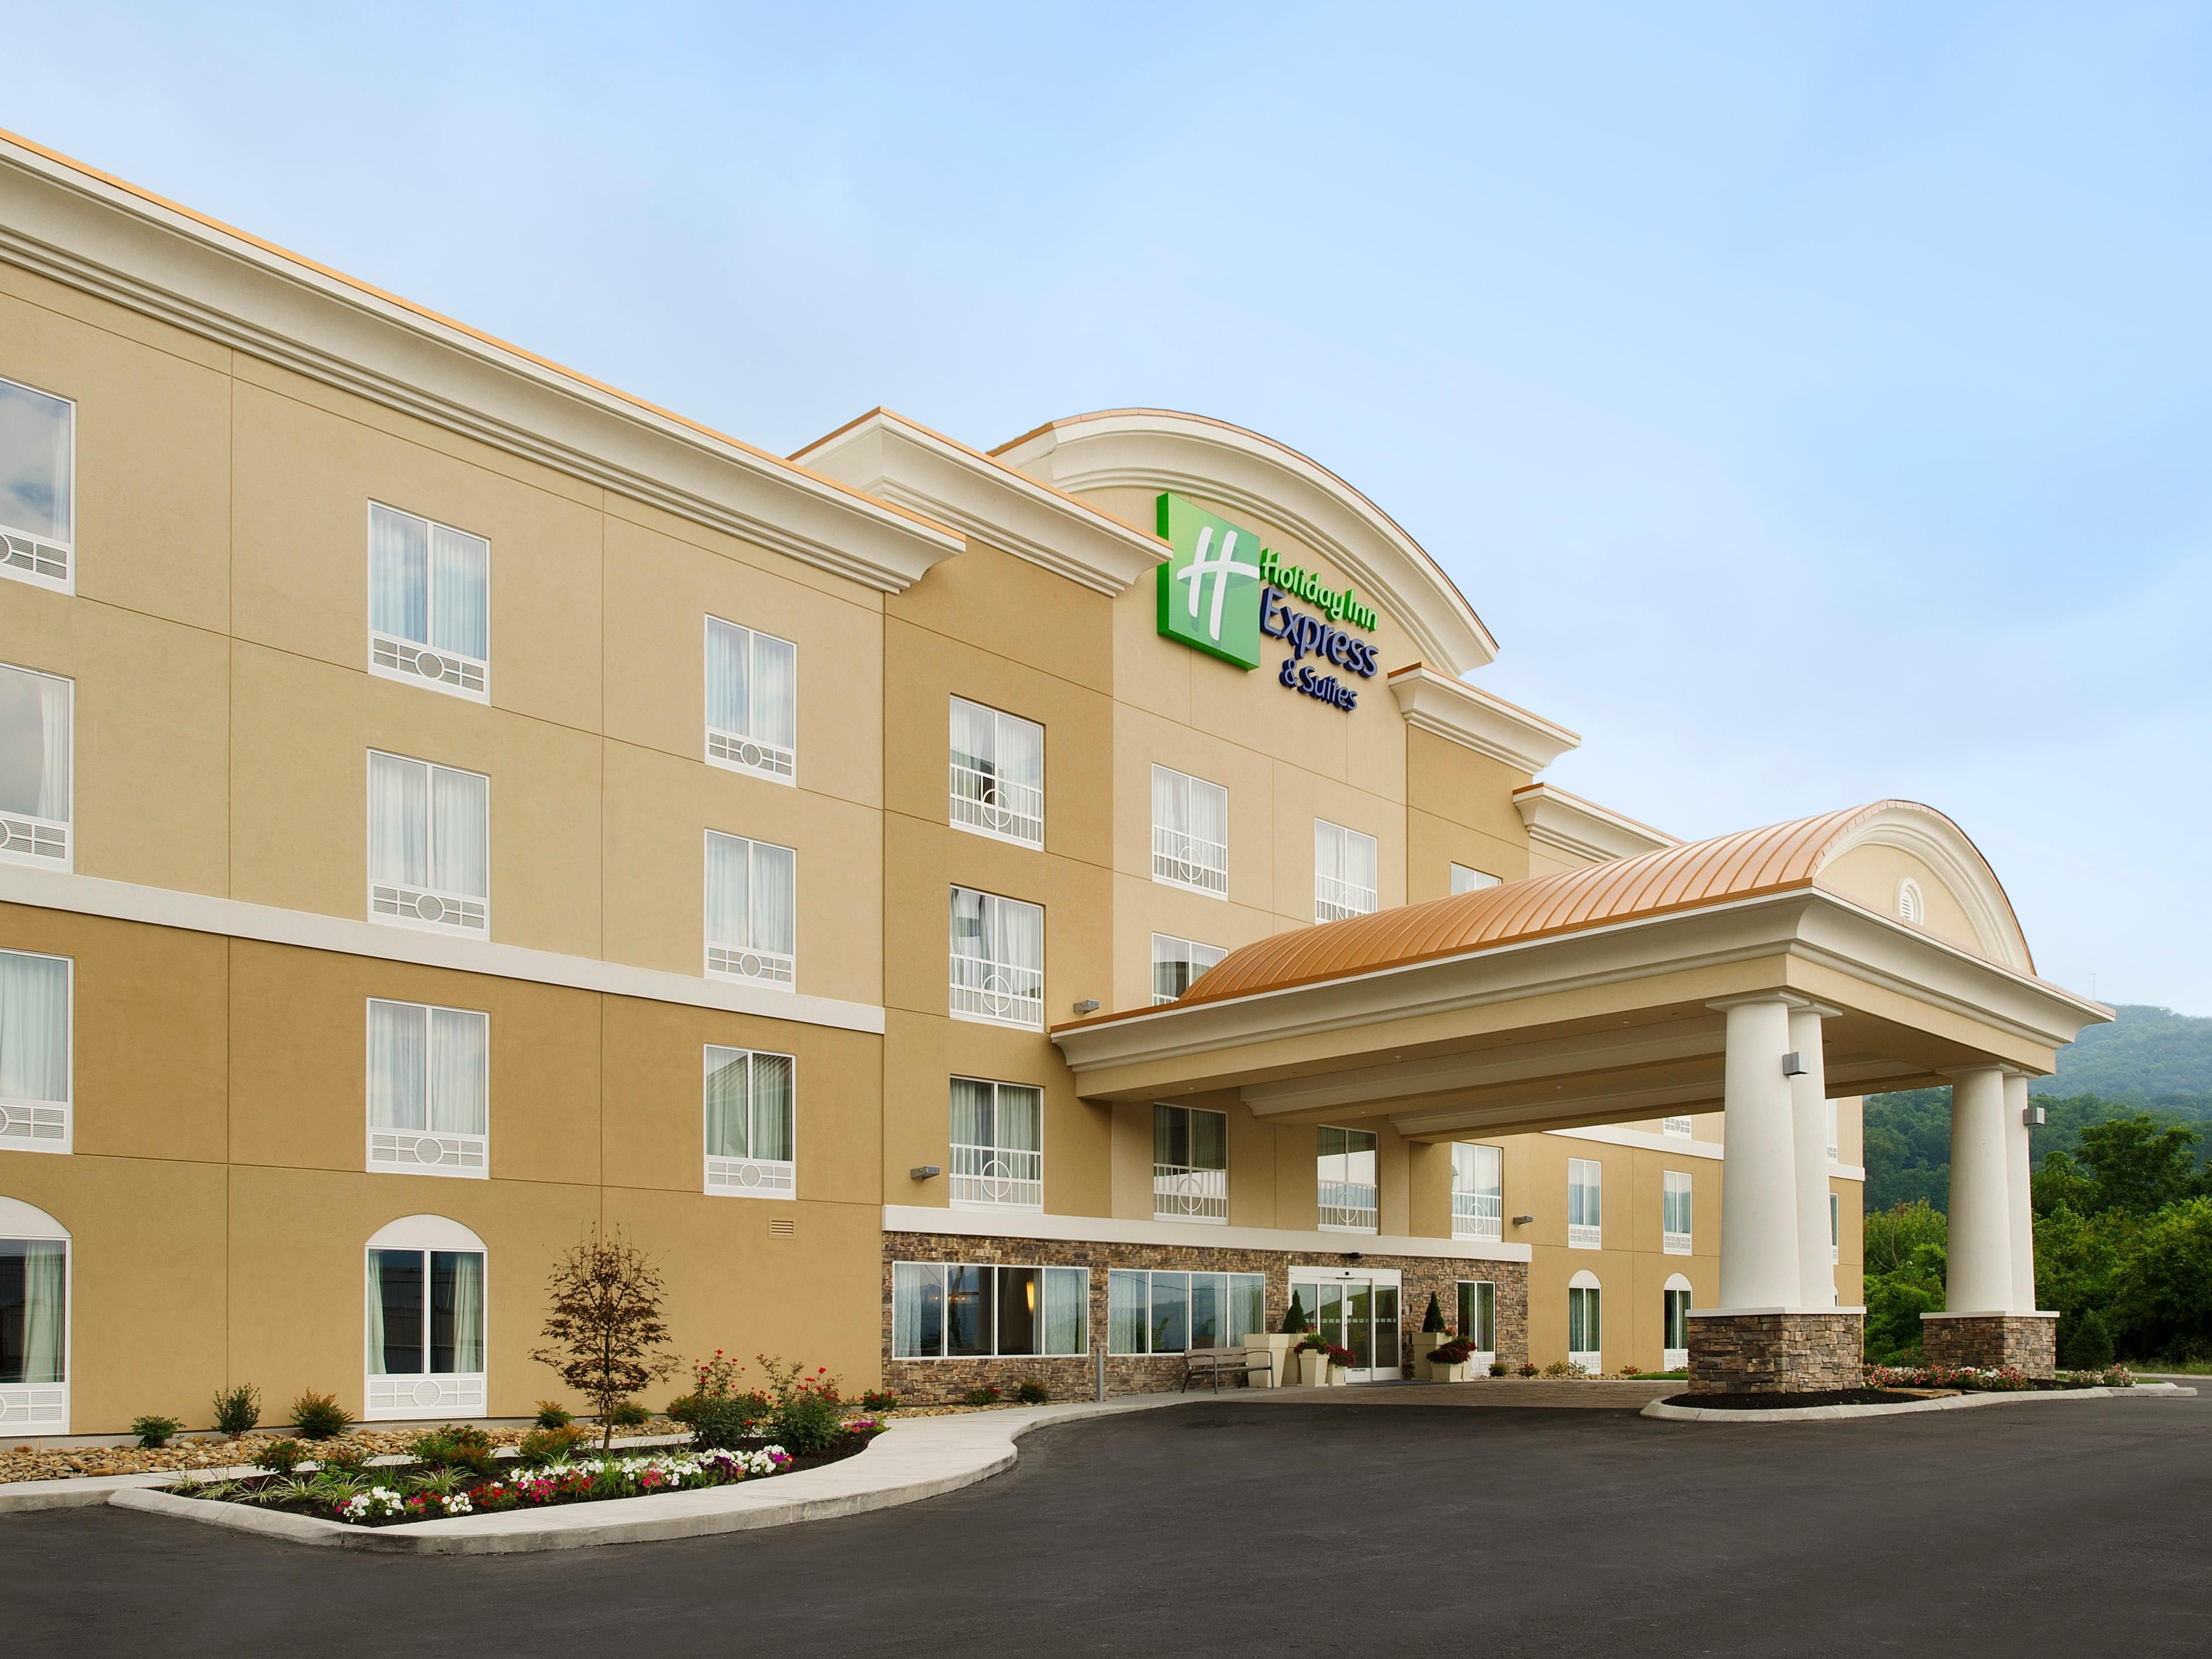 Welcome to the Holiday Inn Express & Suites Caryville, TN!